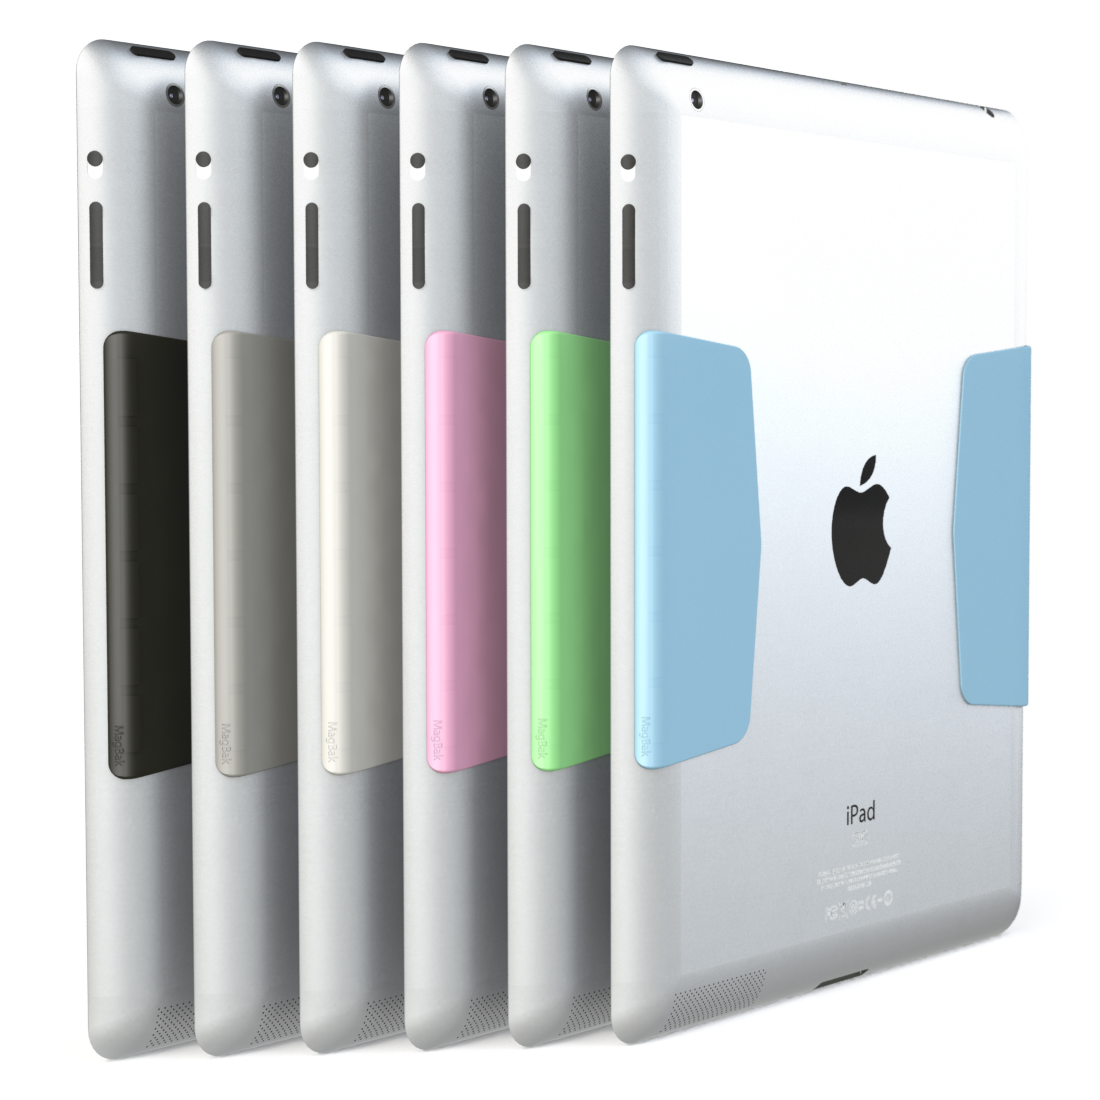 colors of magbak match the colors of smart cover